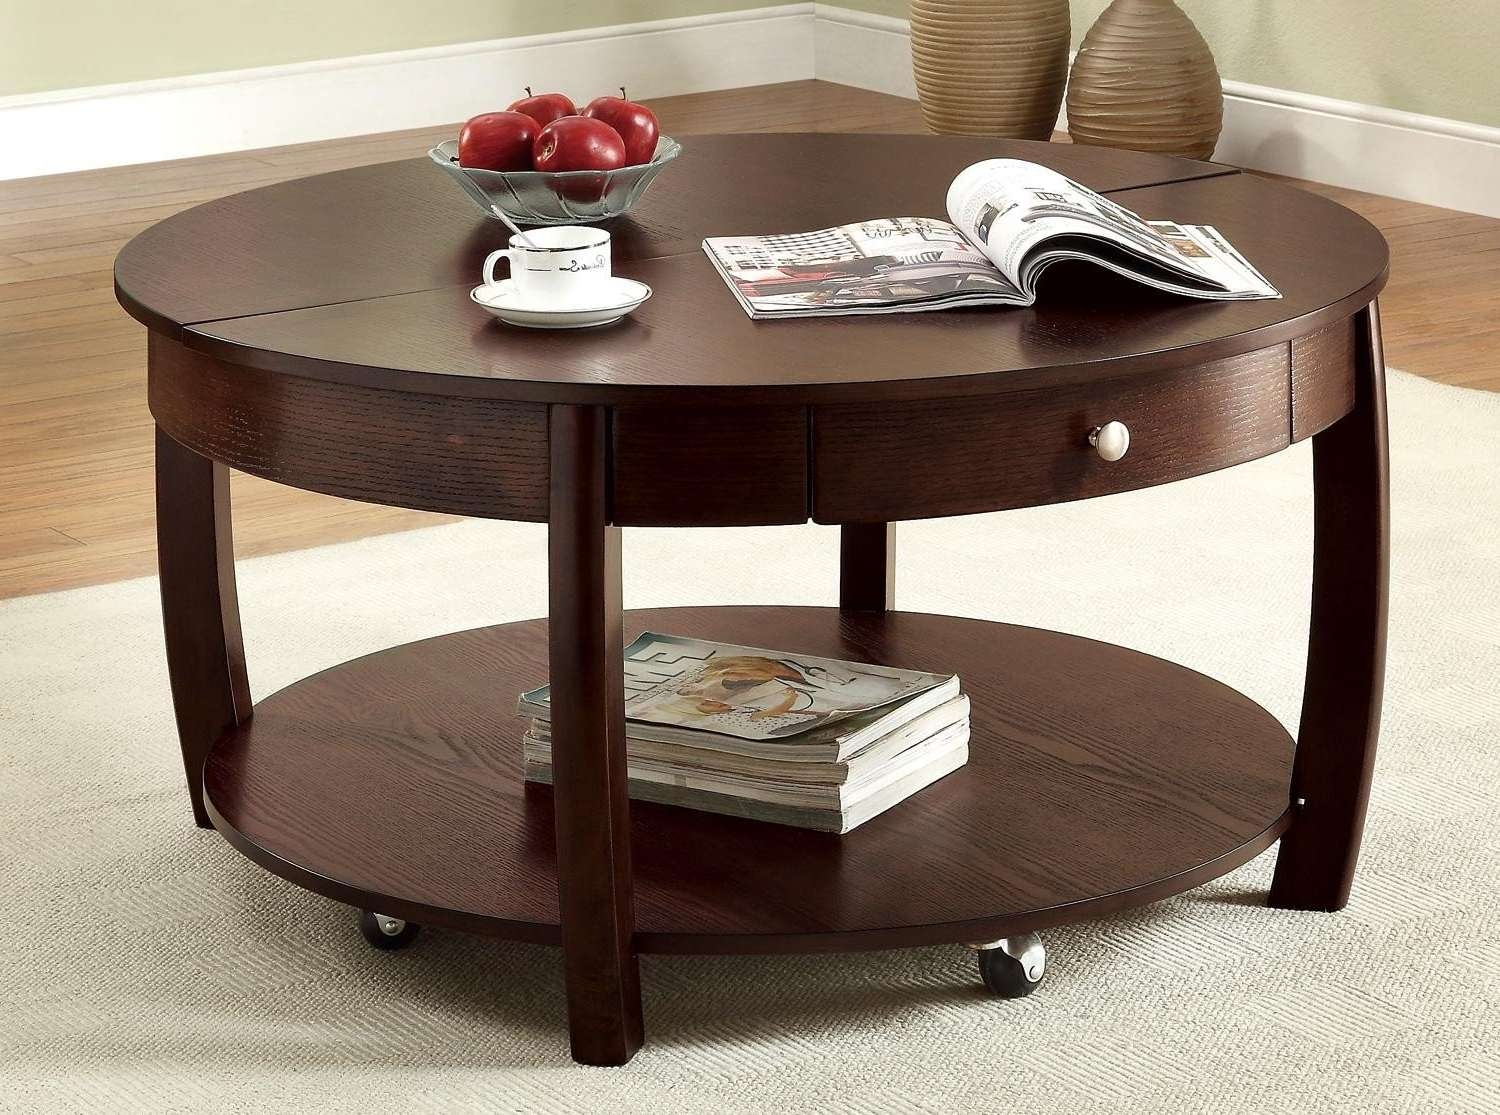 Famous Circular Coffee Tables With Storage Within Round Coffee Table Design Ideas — The Wooden Houses (View 11 of 20)